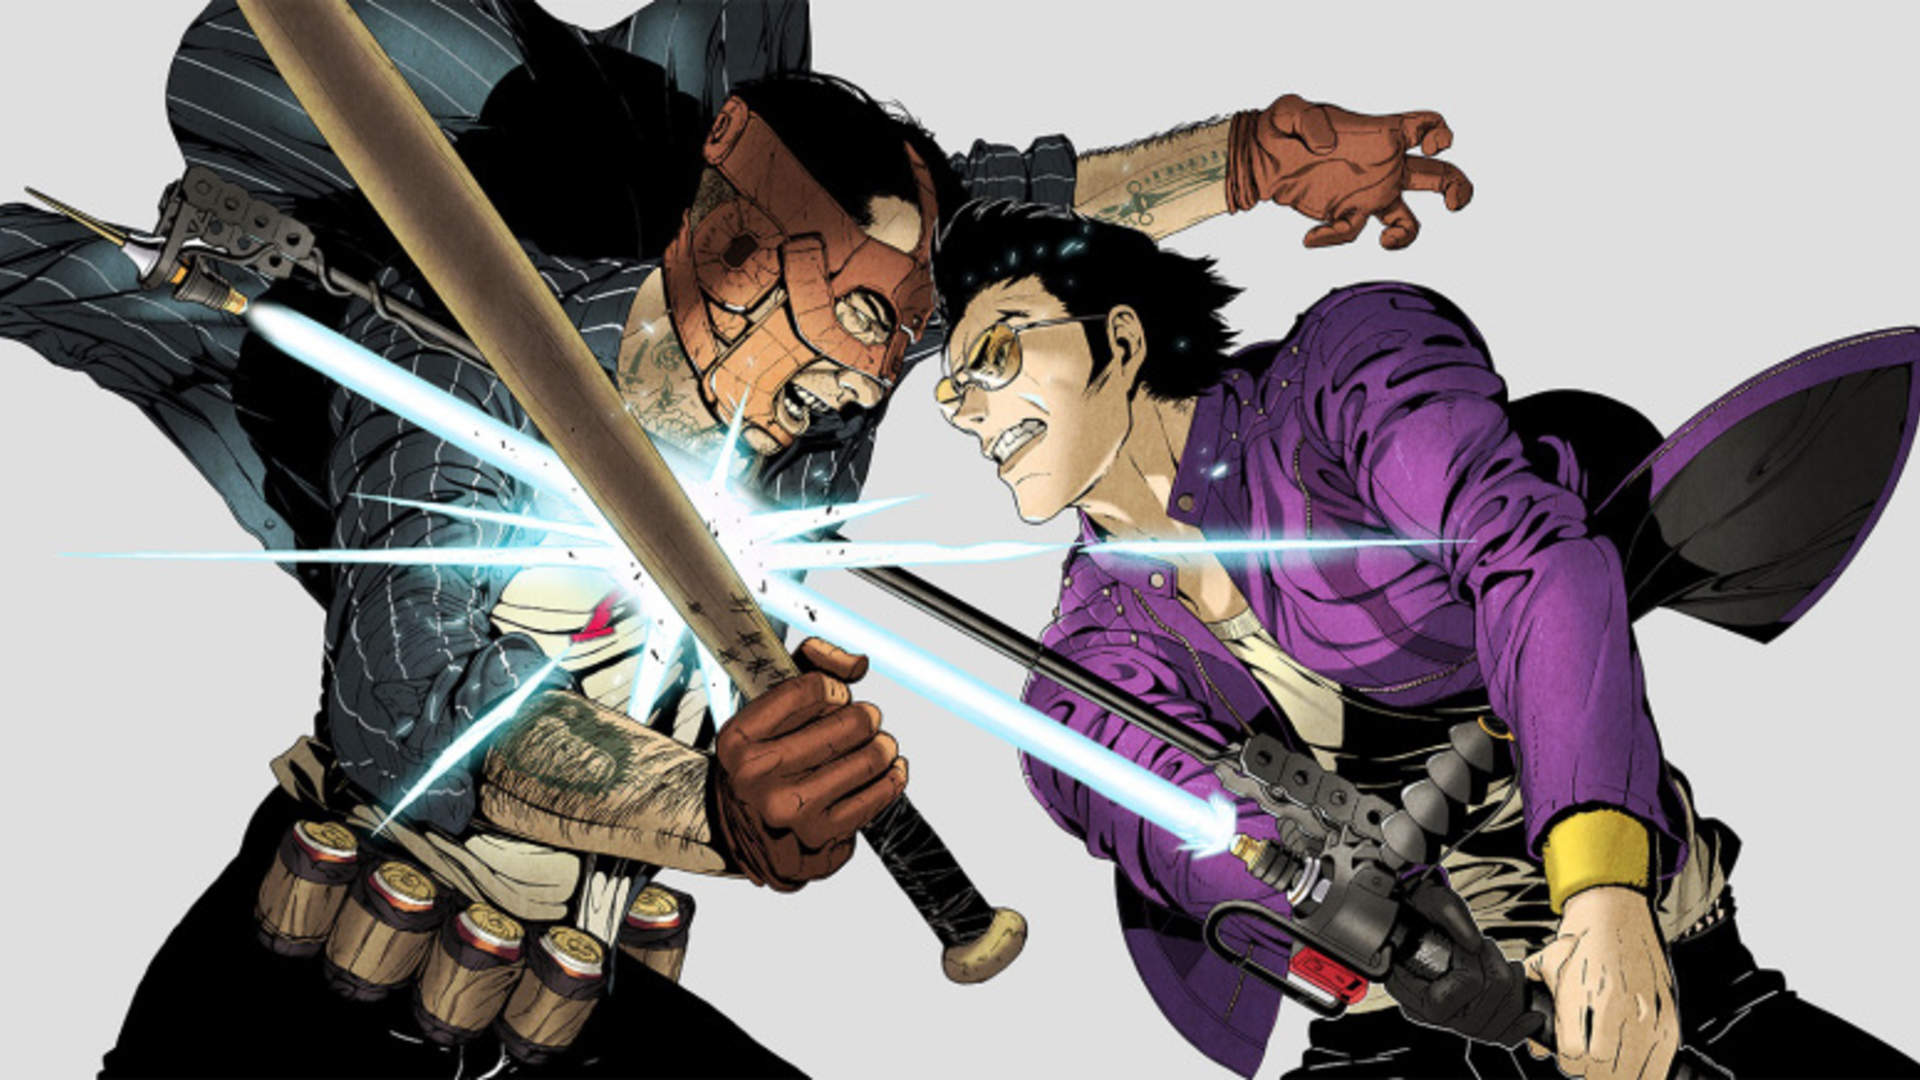 Poster of the No More Heroes 3 Game